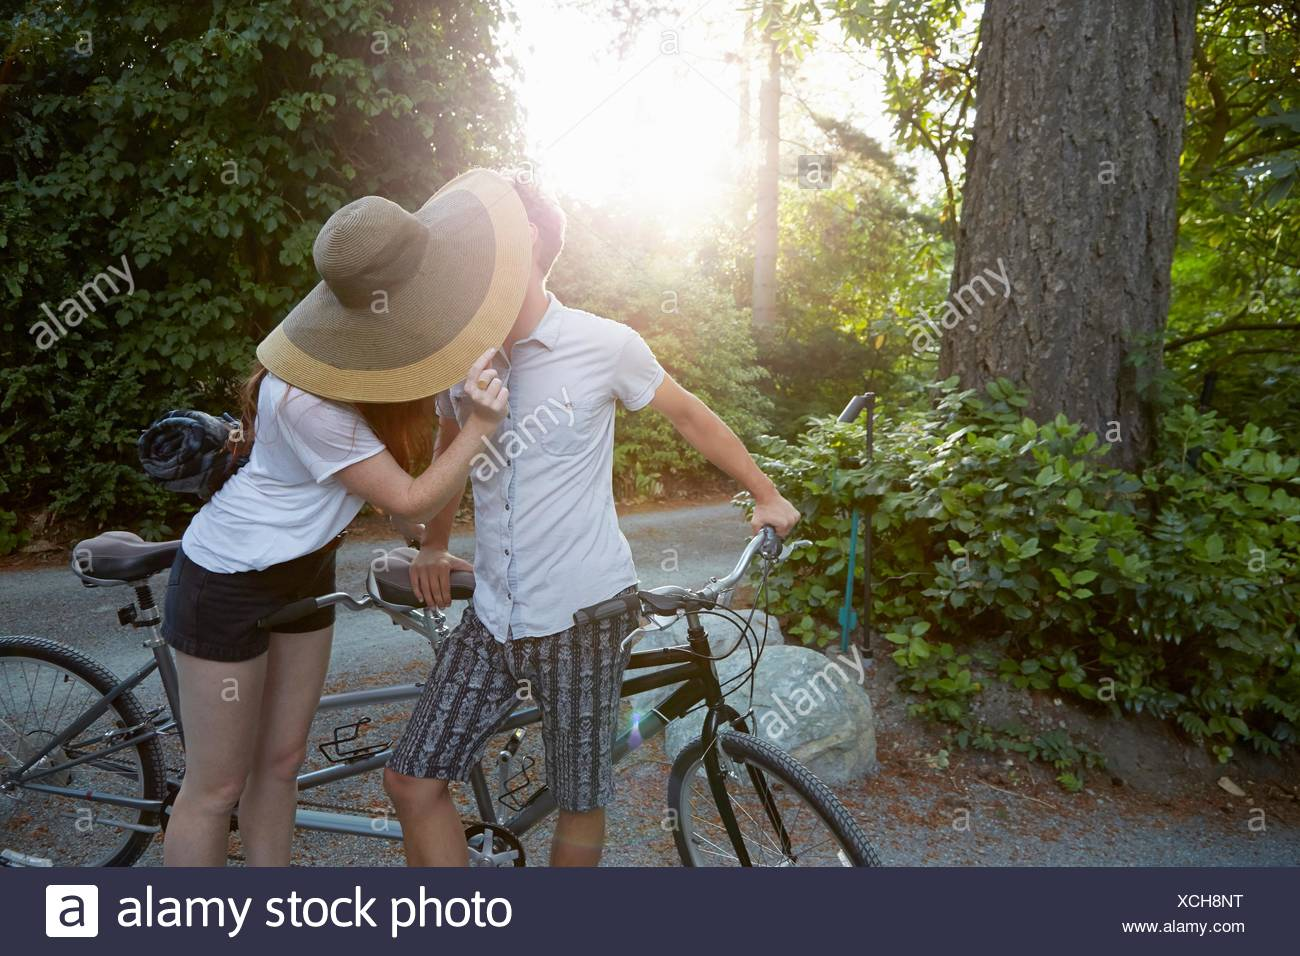 Young couple with tandem cycle kissing on rural road - Stock Image